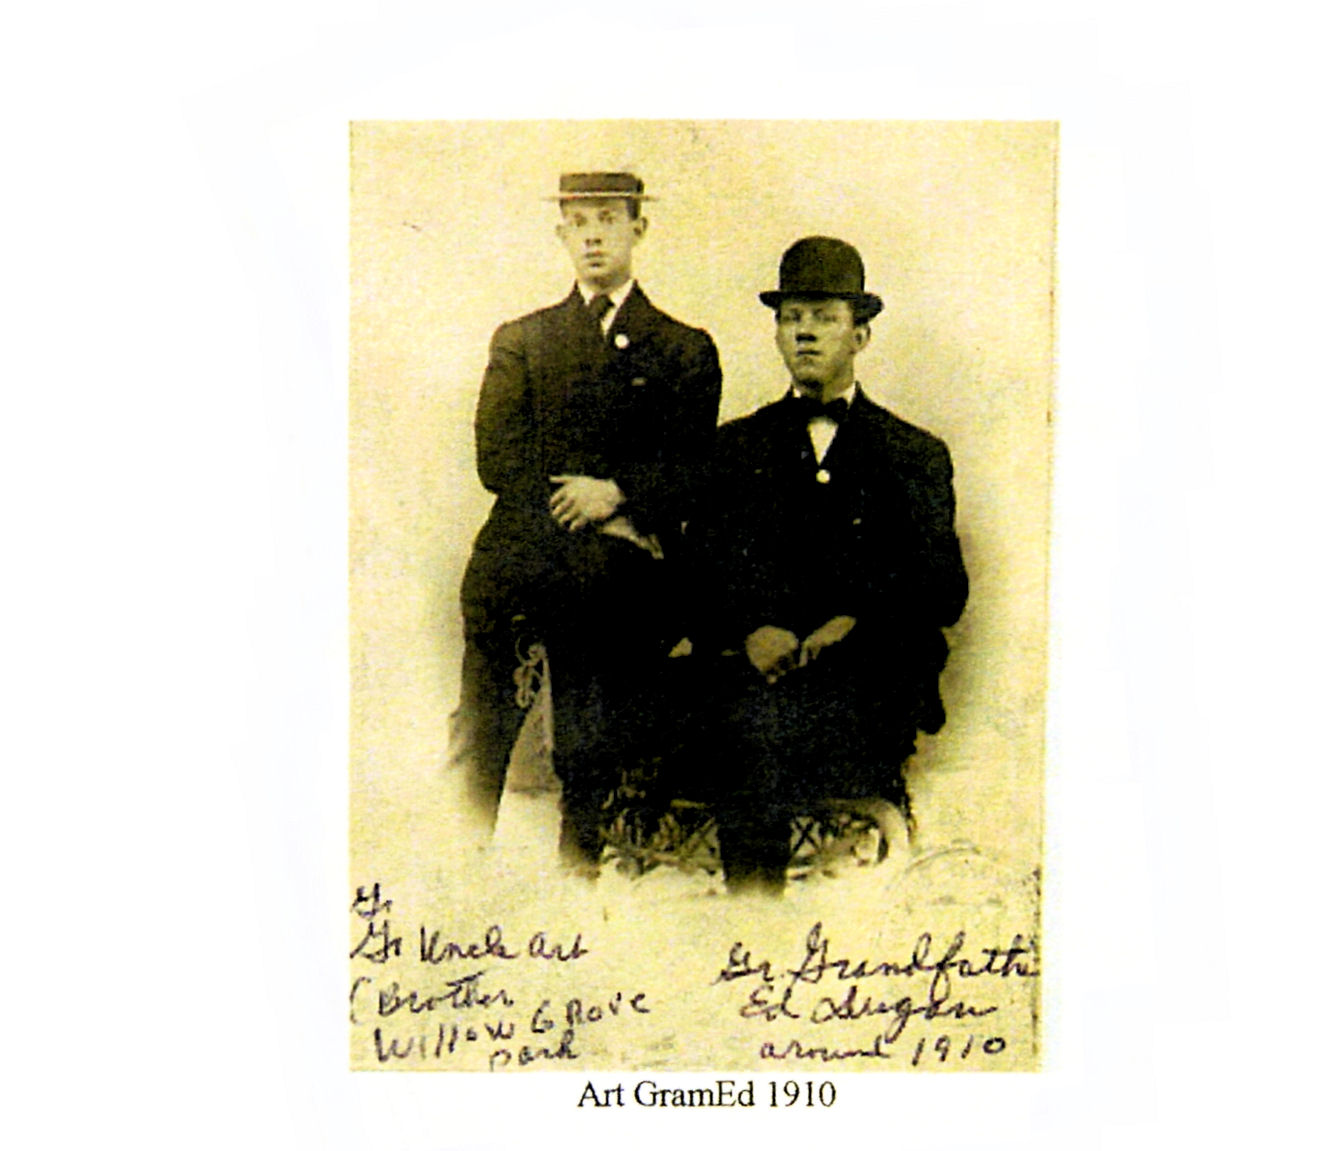 Grand grand father Ed Dugan and his brother abt 1910 Willow Grove Park, PA